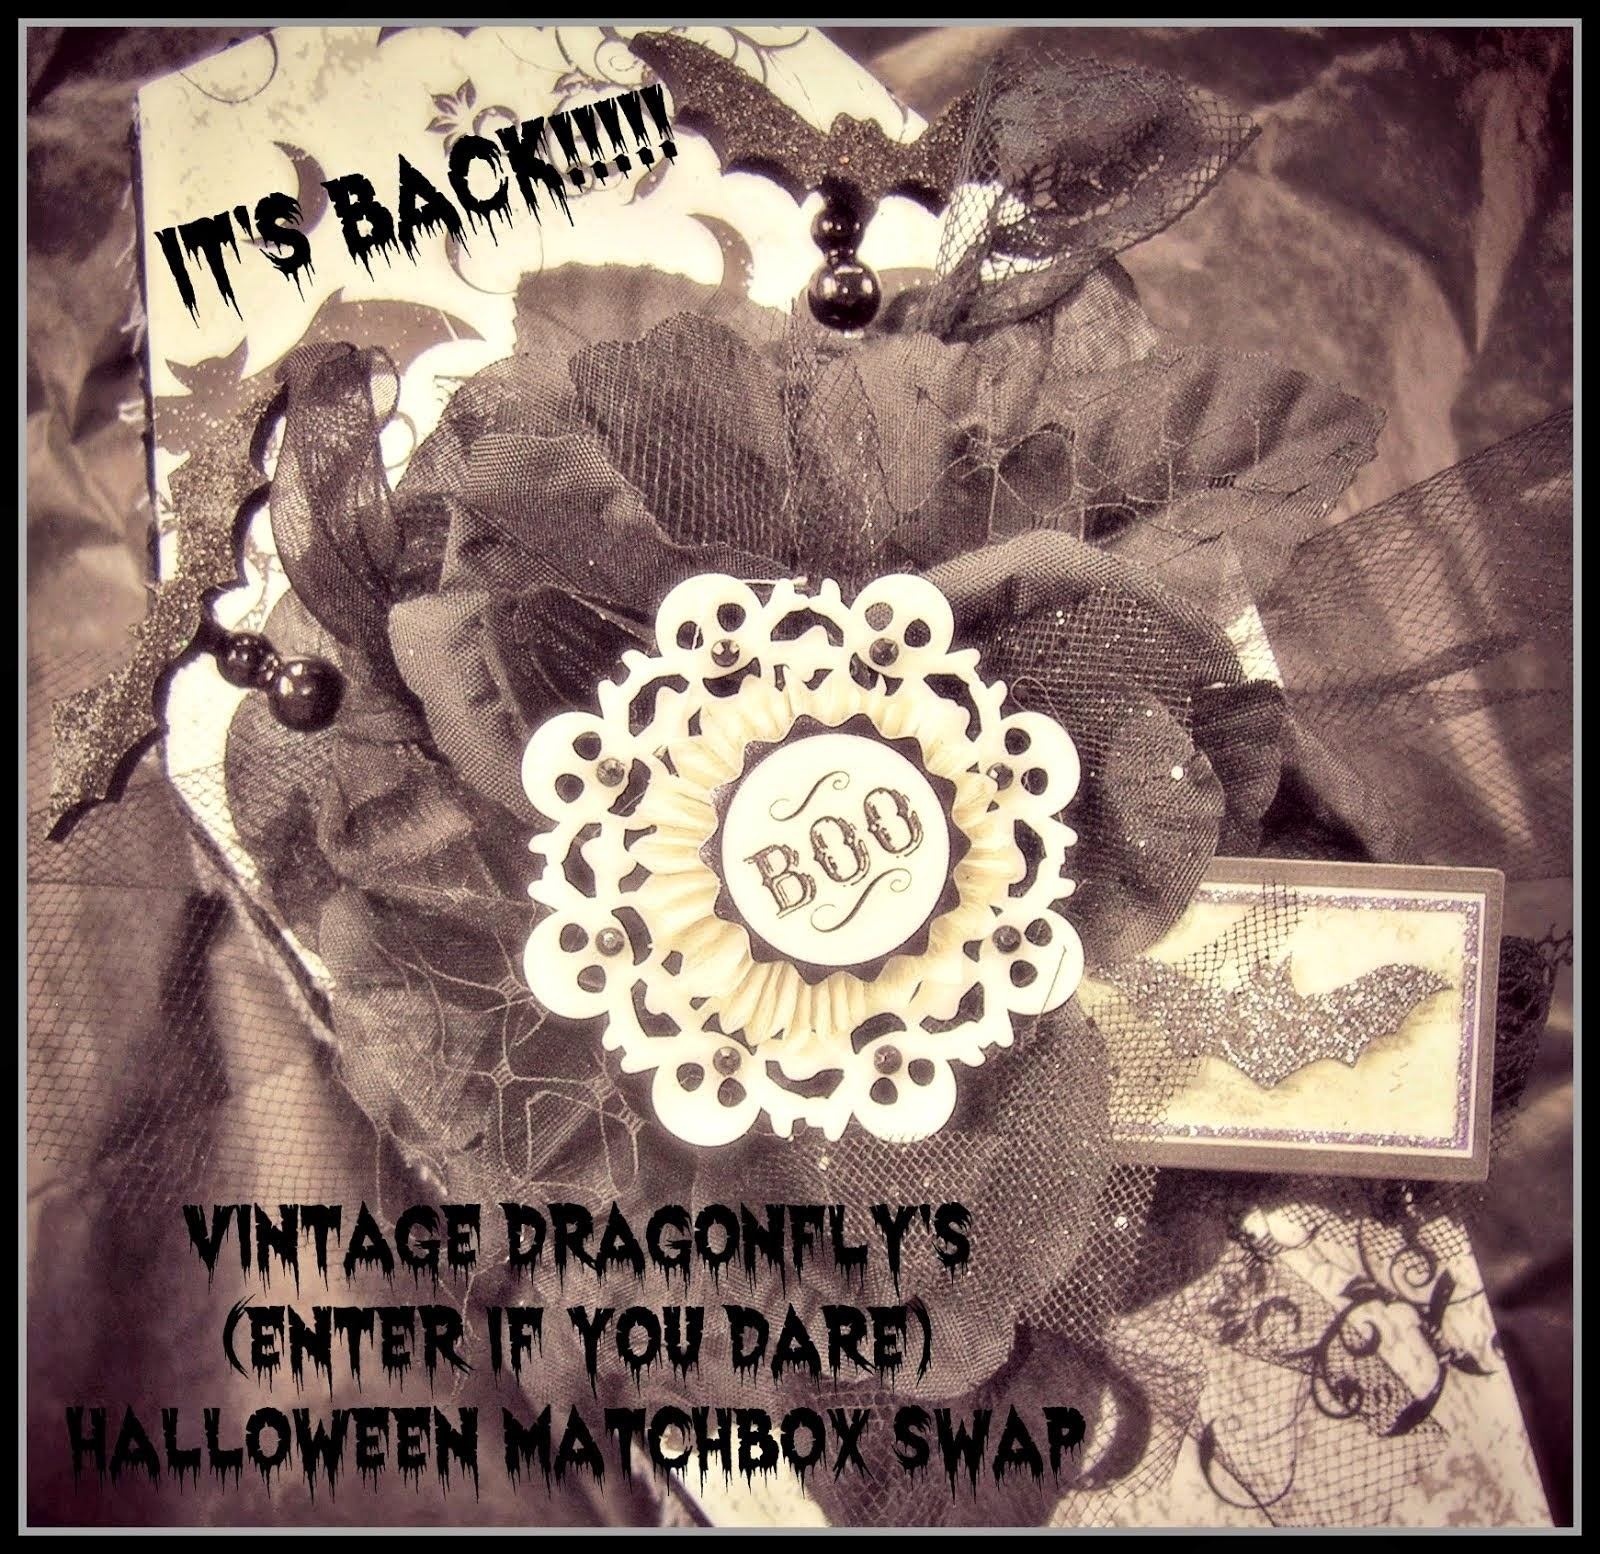 http://vintagedragonfly.blogspot.com/2014/09/another-halloween-swap-free-halloween.html